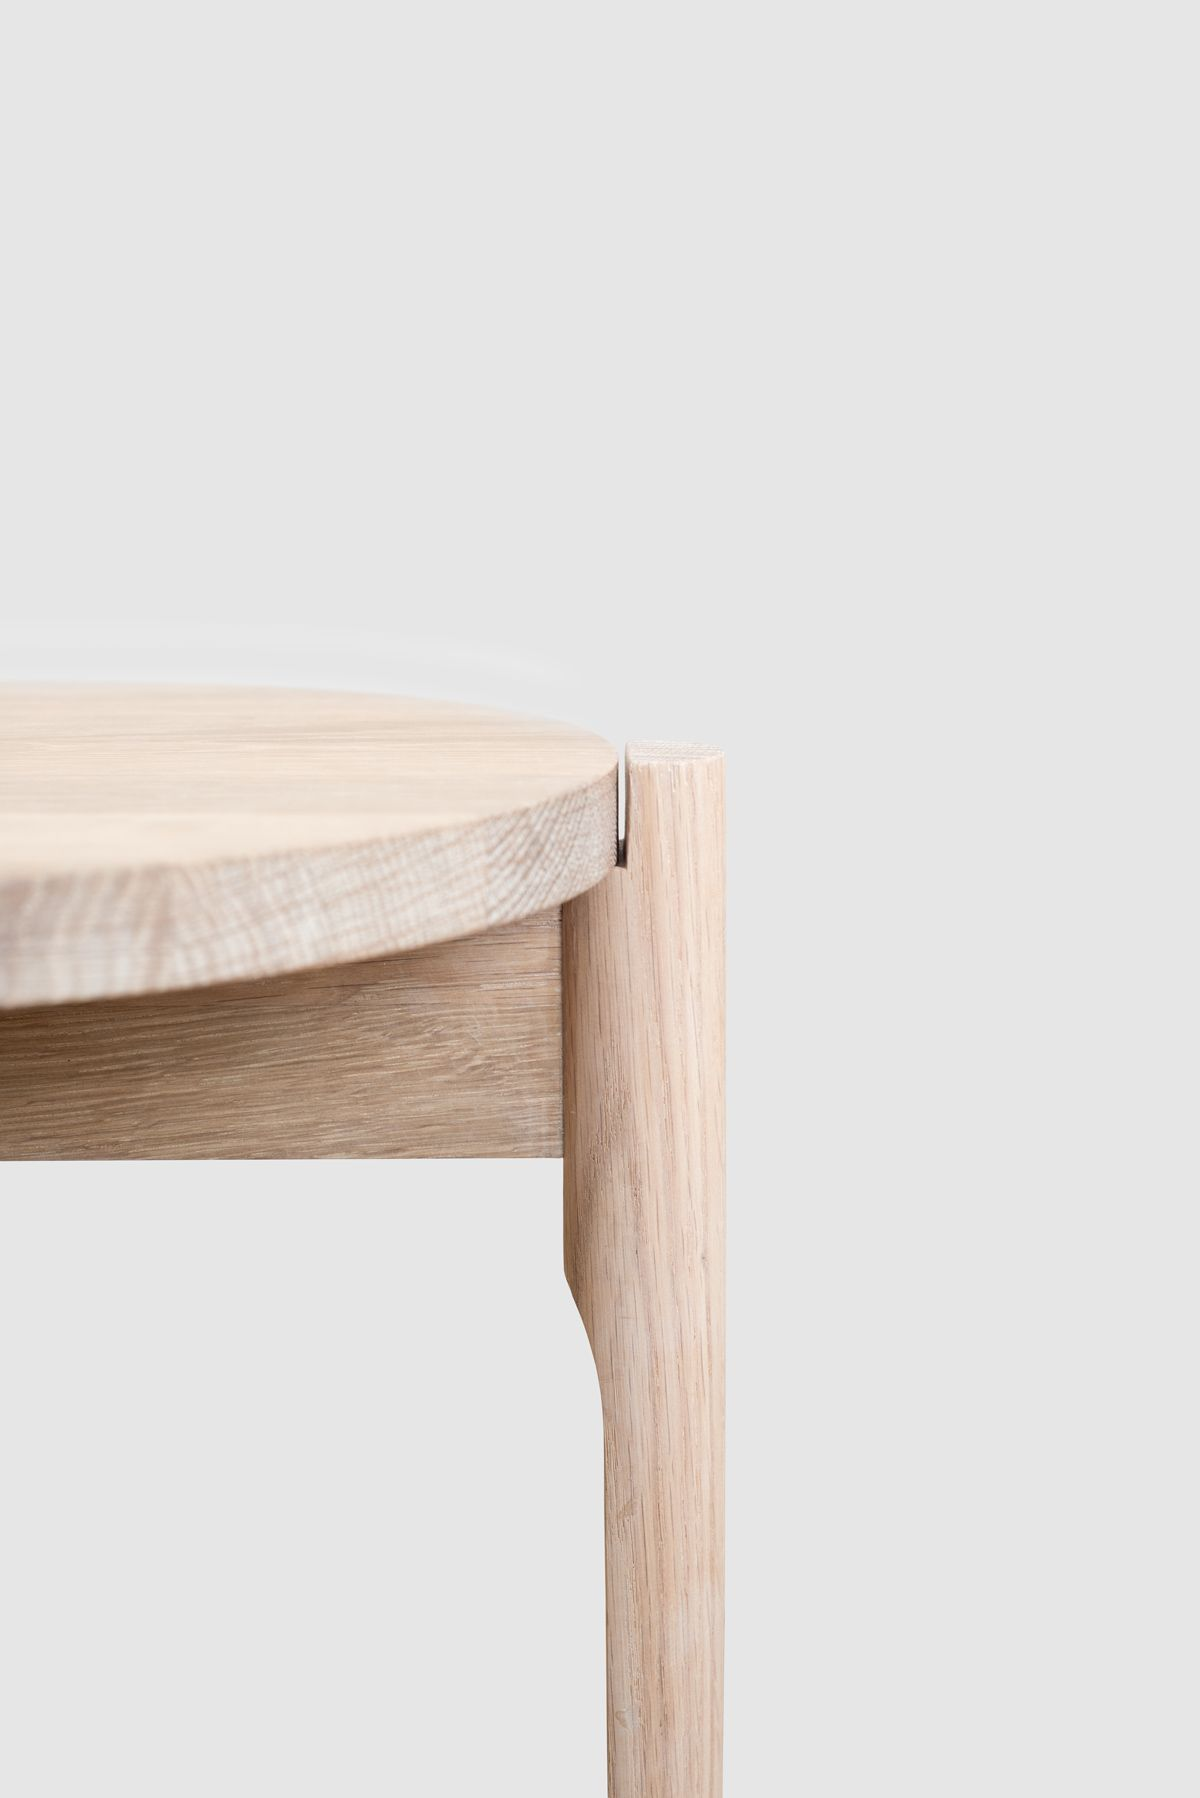 Explore These Ideas And More! Worden Stool ...